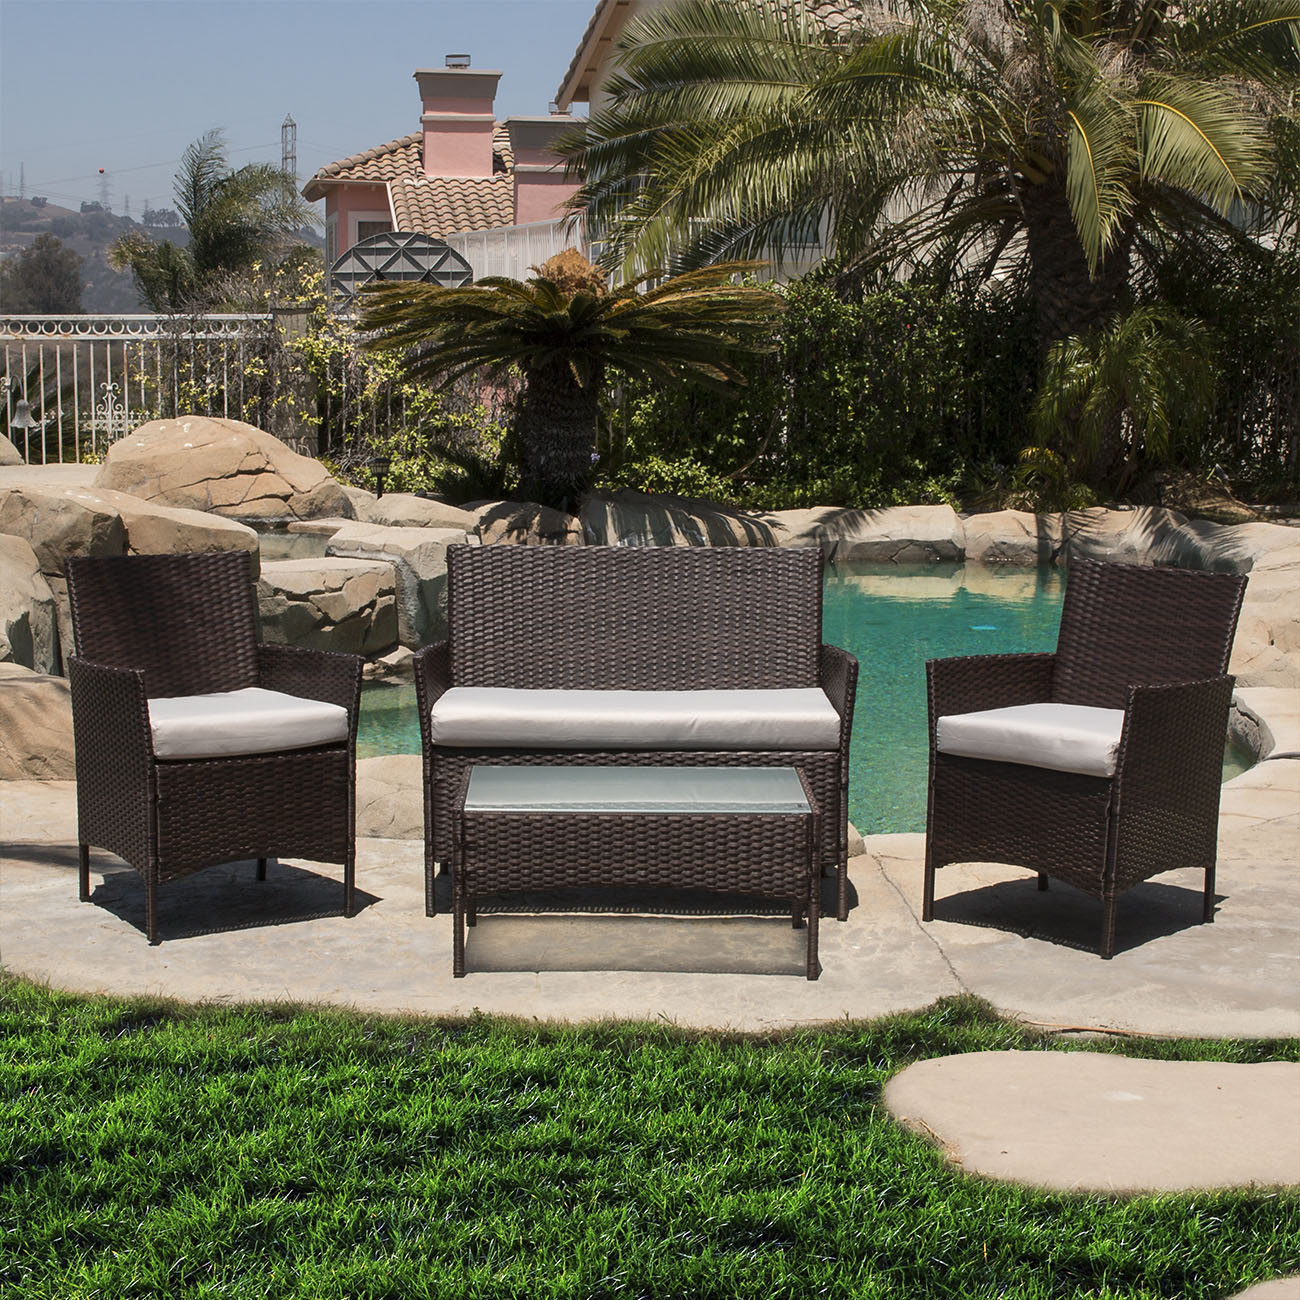 4 pc rattan furniture set outdoor patio garden sectional for Garden patio furniture sets